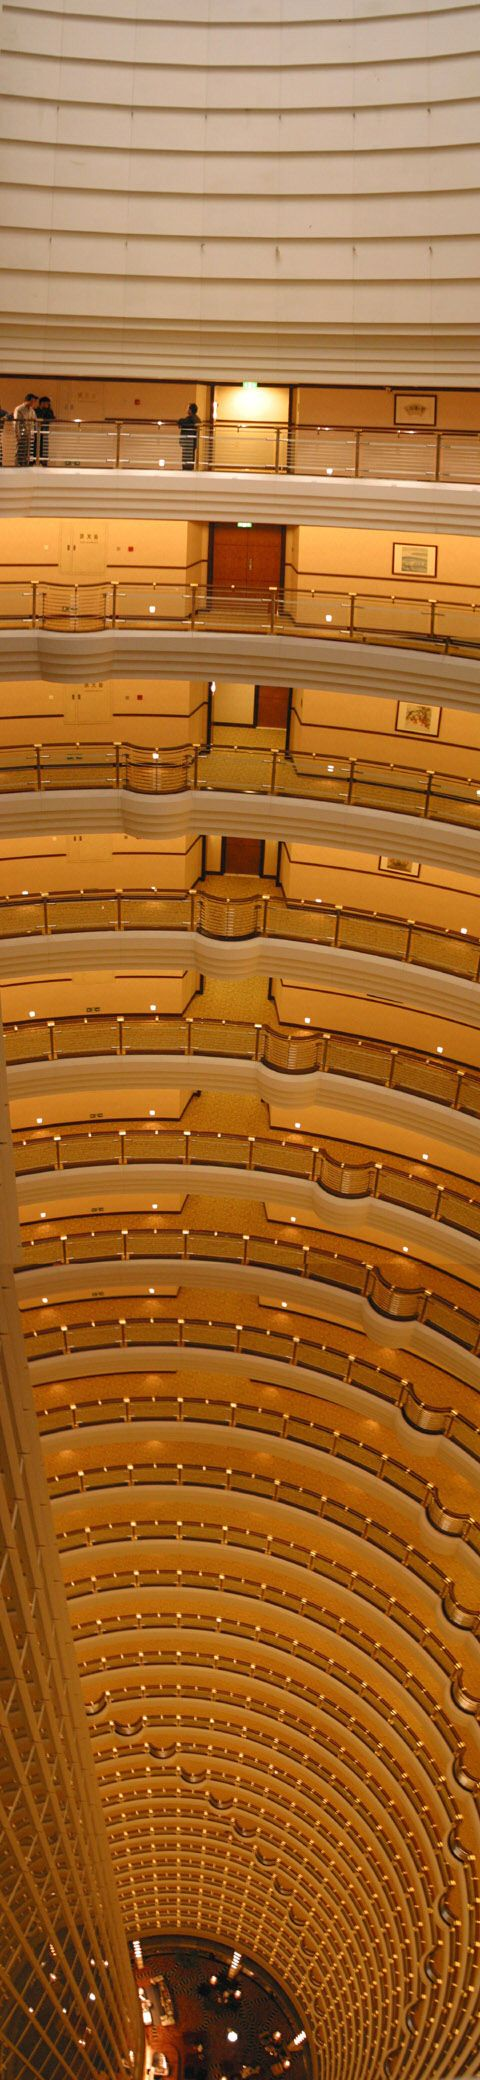 Grand Hyatt Hotel, Jin Mao Tower, Shanghai